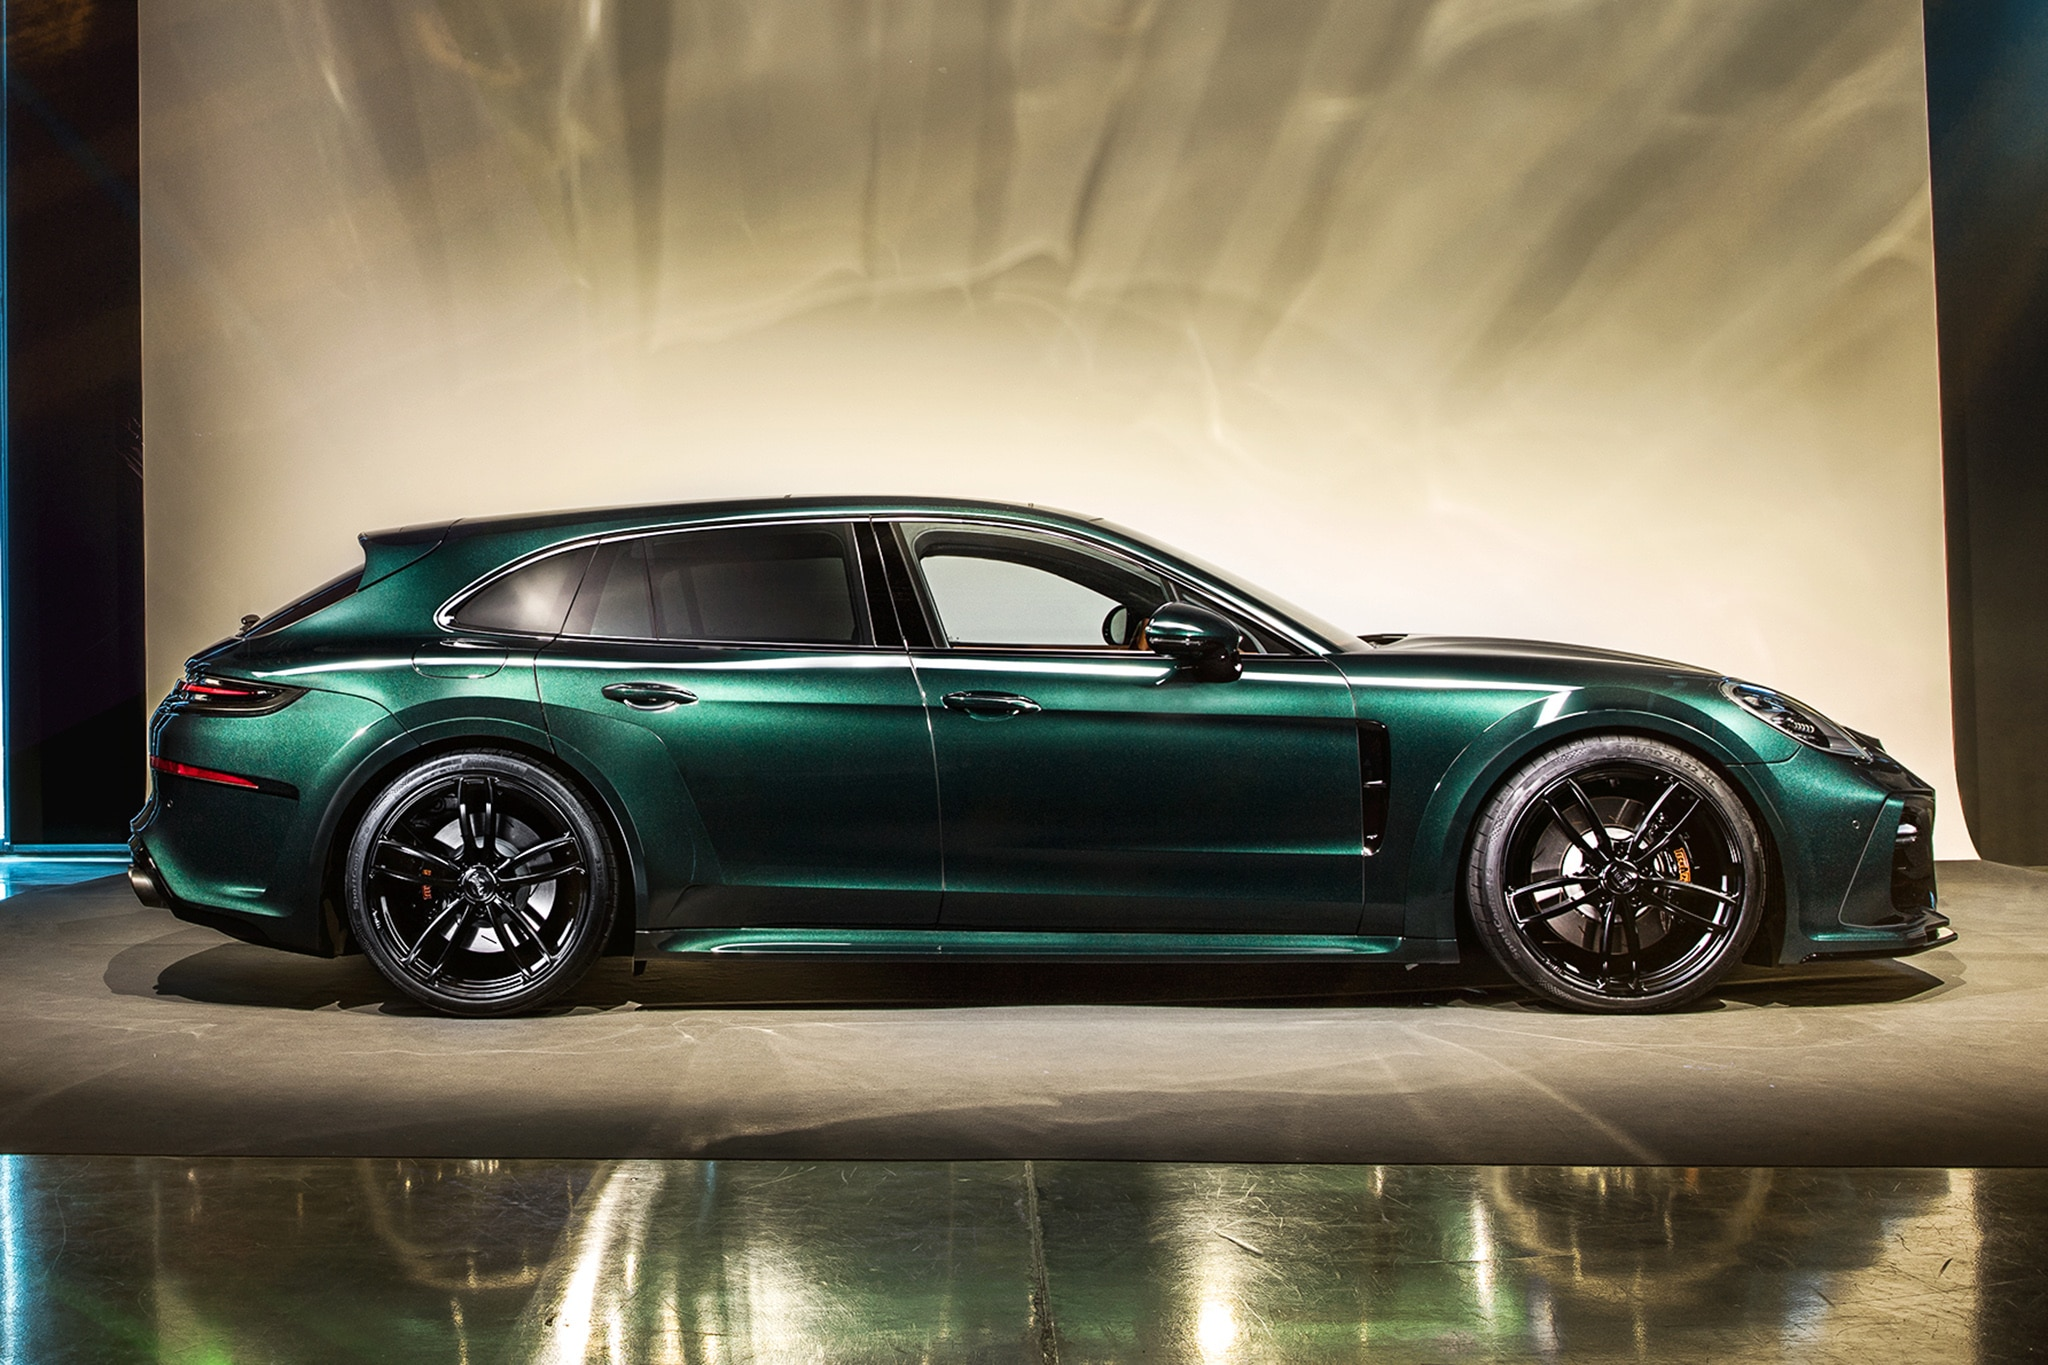 Techart S Porsche Panamera Sport Turismo Package To Debut In Geneva Automobile Magazine